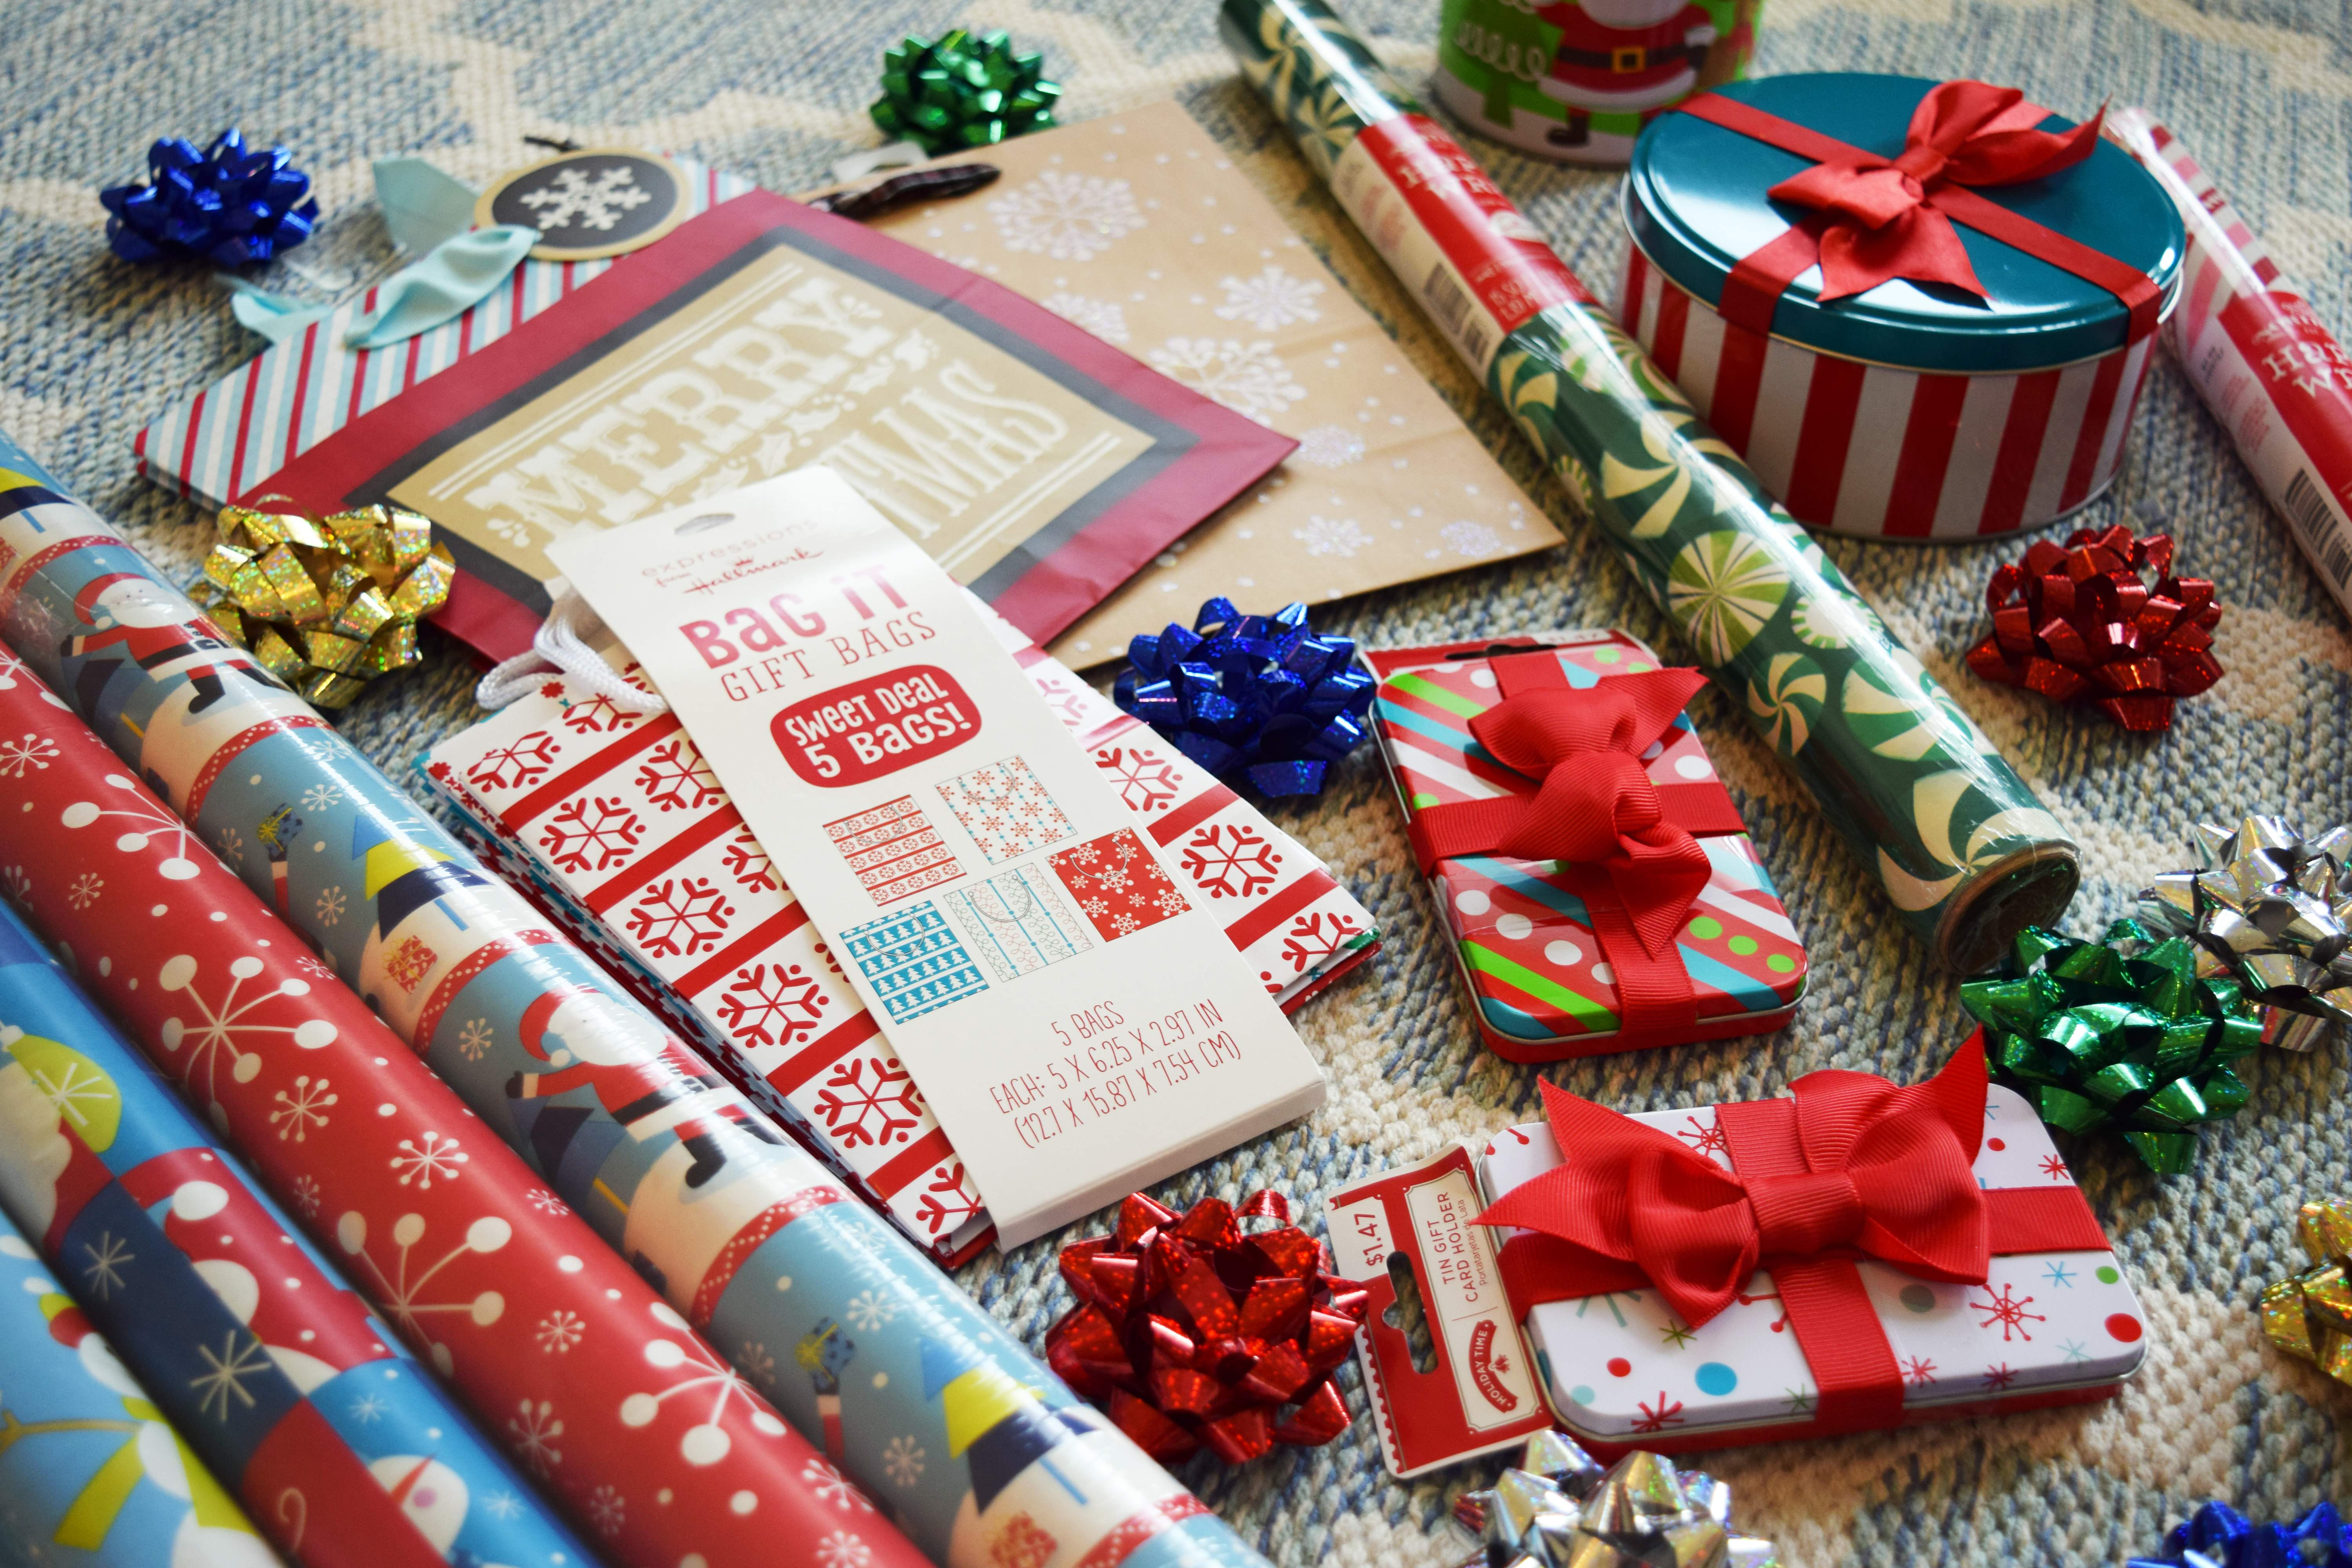 To suit any occasion and recipient, try our kraft wrapping paper, polka dot wrapping paper, striped wrapping paper, or solid color wrapping paper. Our selection of everyday patterns means there's lots to choose from for any occasion, big or small; your gifts will never seem ordinary! Solids. Sometimes, the best gift wrap is also the most simple.